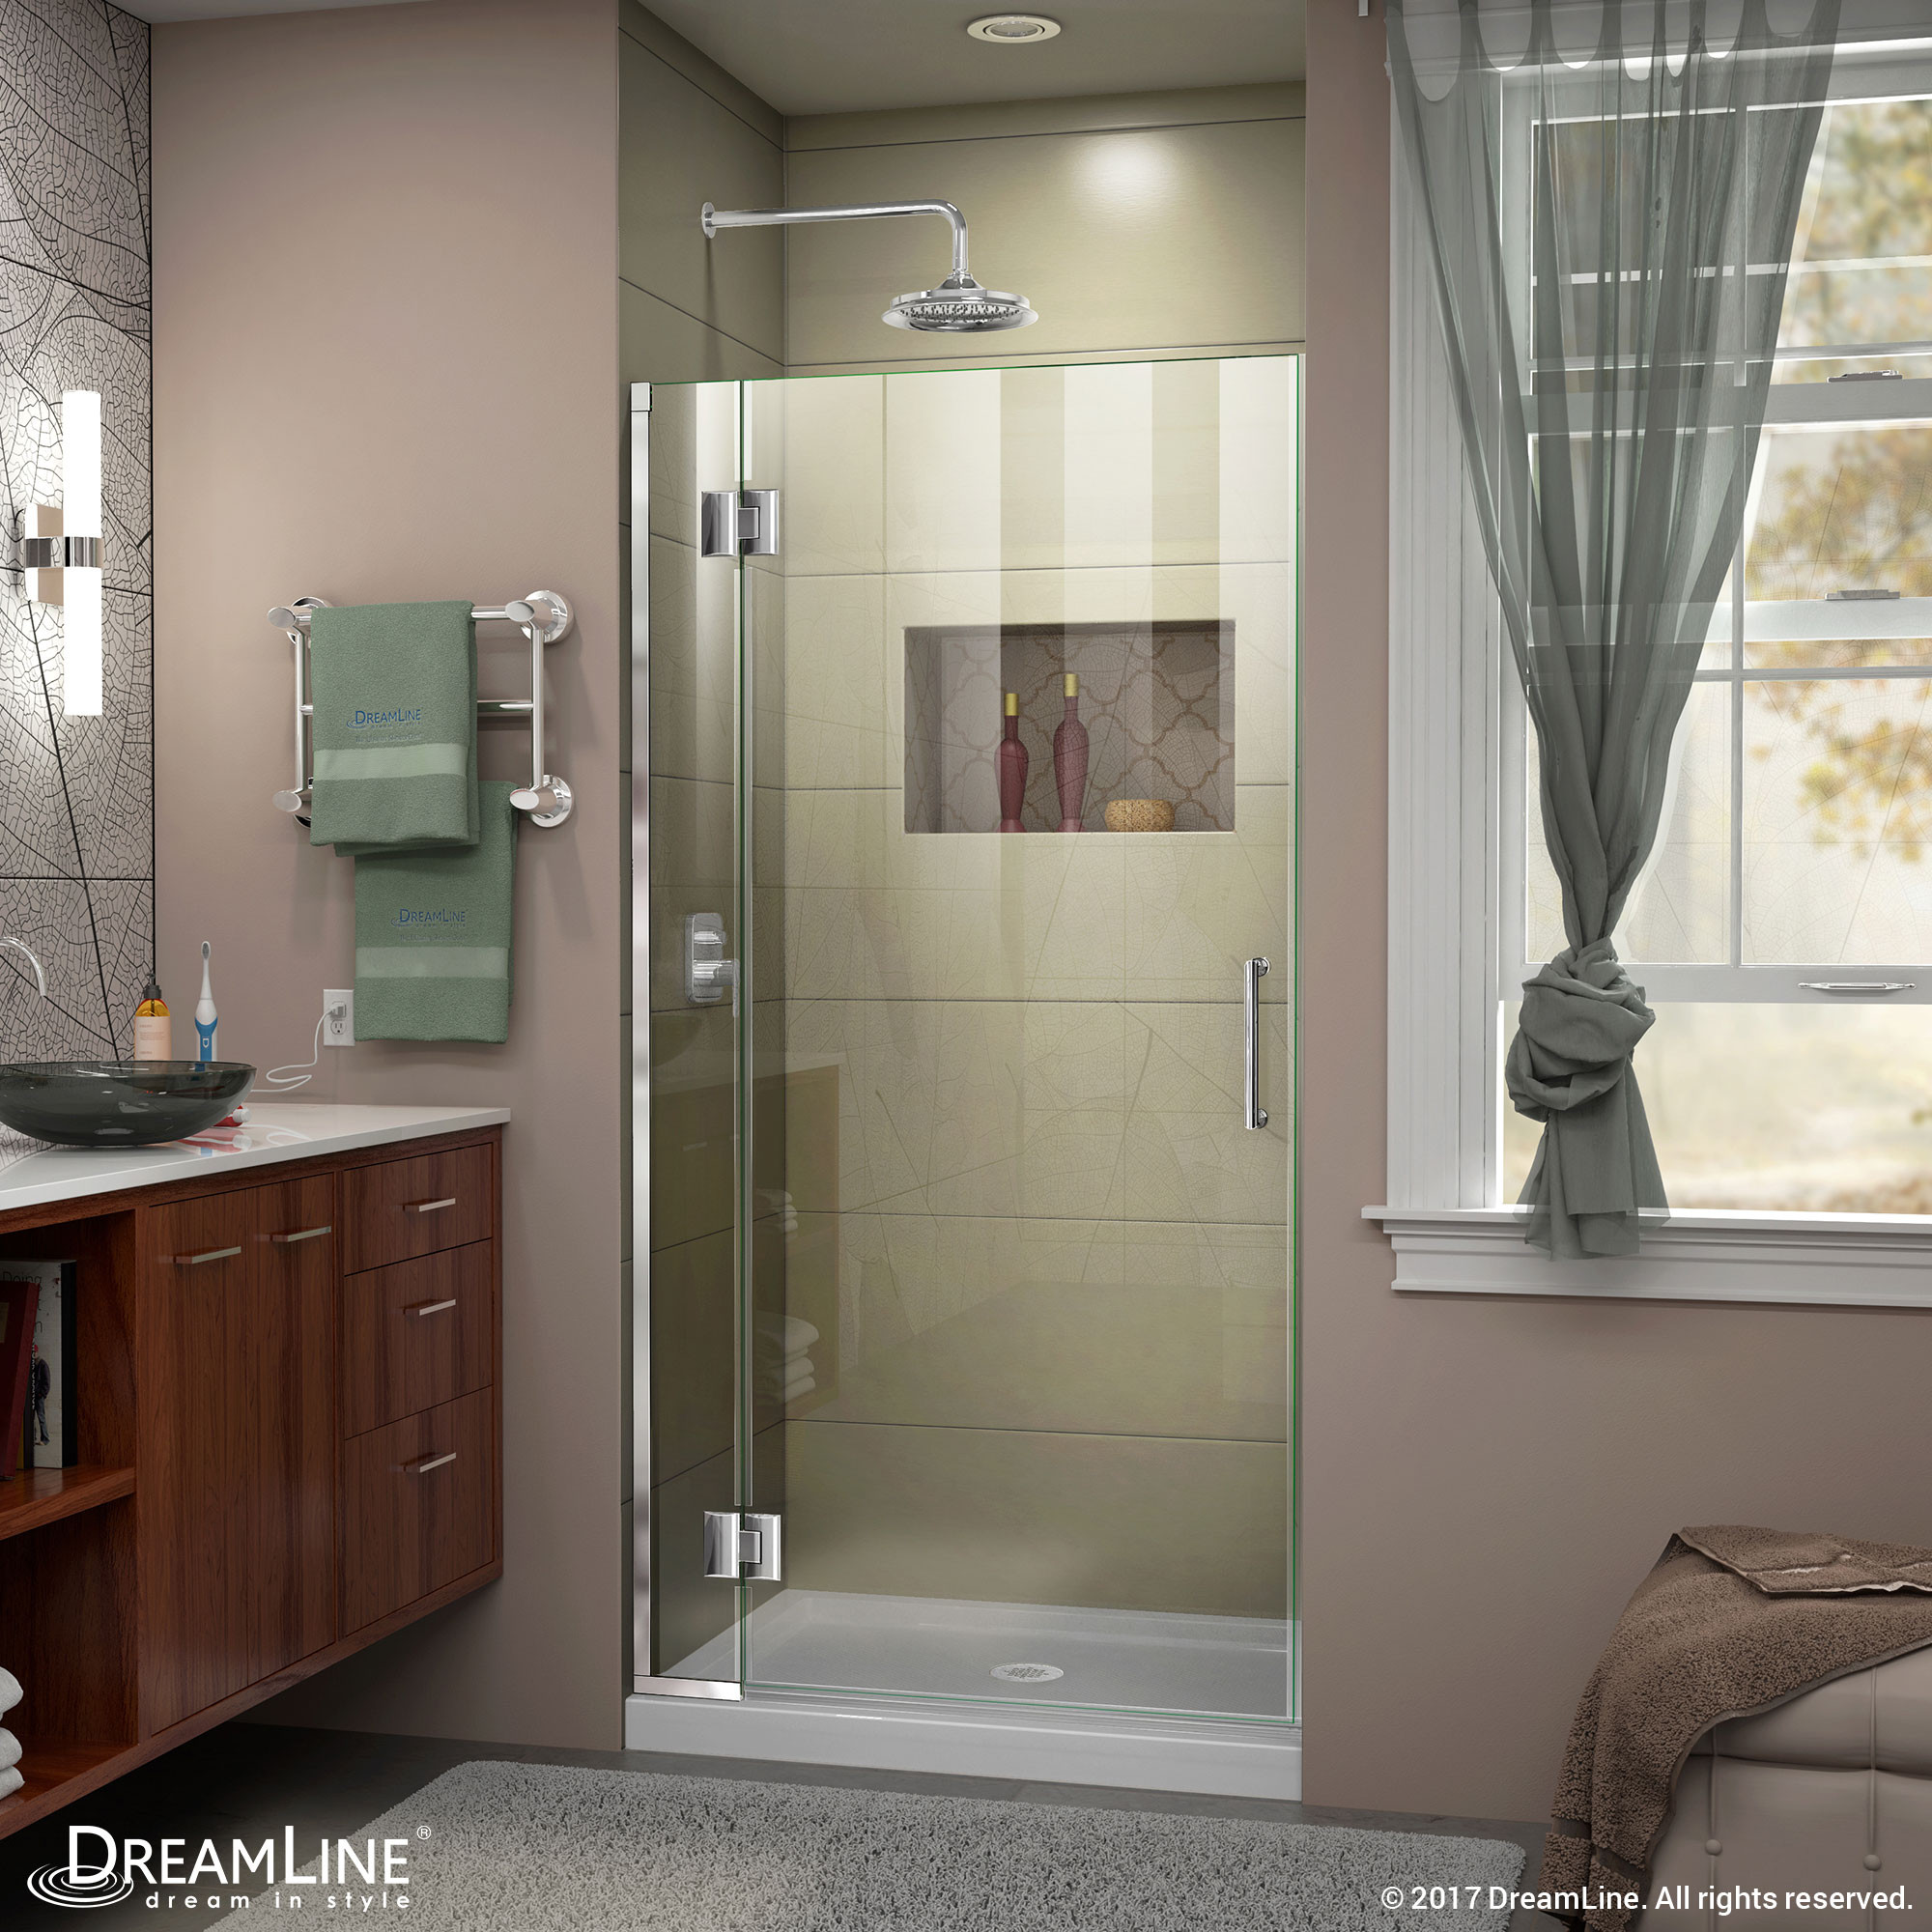 DreamLine D13072-01 Unidoor-X 36 in. W x 72 in. H Hinged Shower Door in Chrome Finish